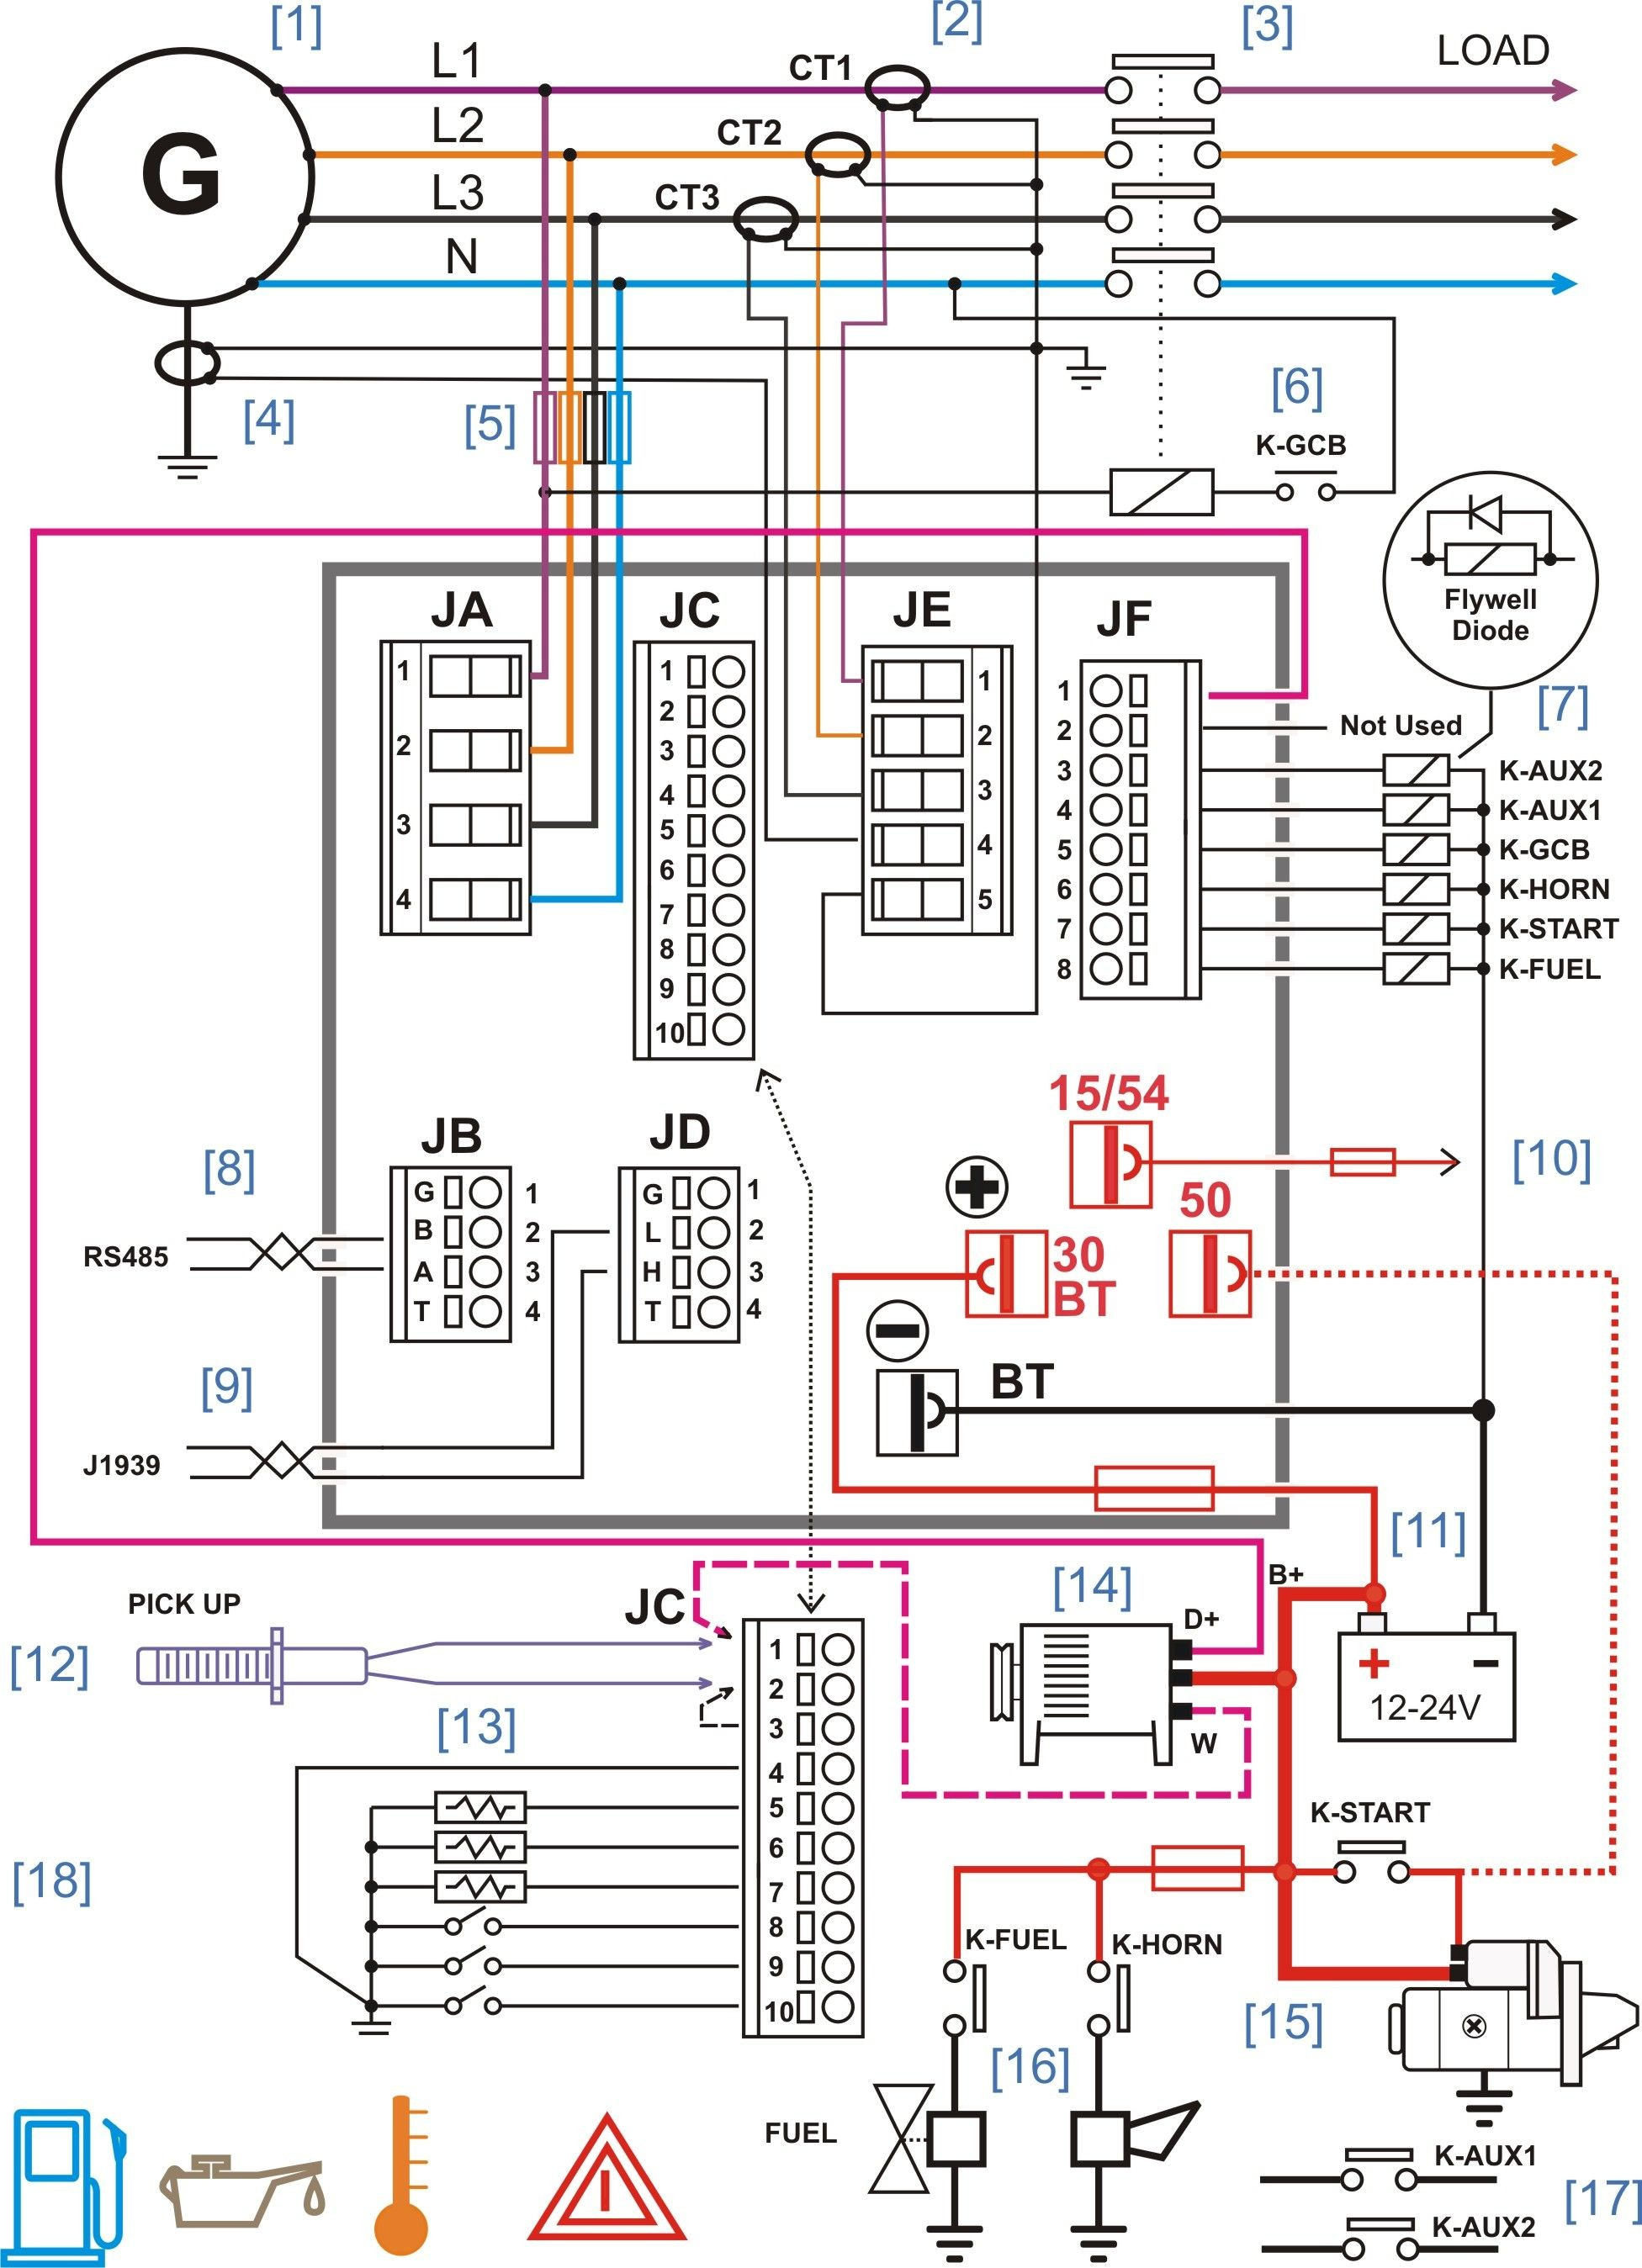 Portable Generator Transfer Switch Wiring Diagram - Wiring Diagram - Manual Transfer Switch Wiring Diagram